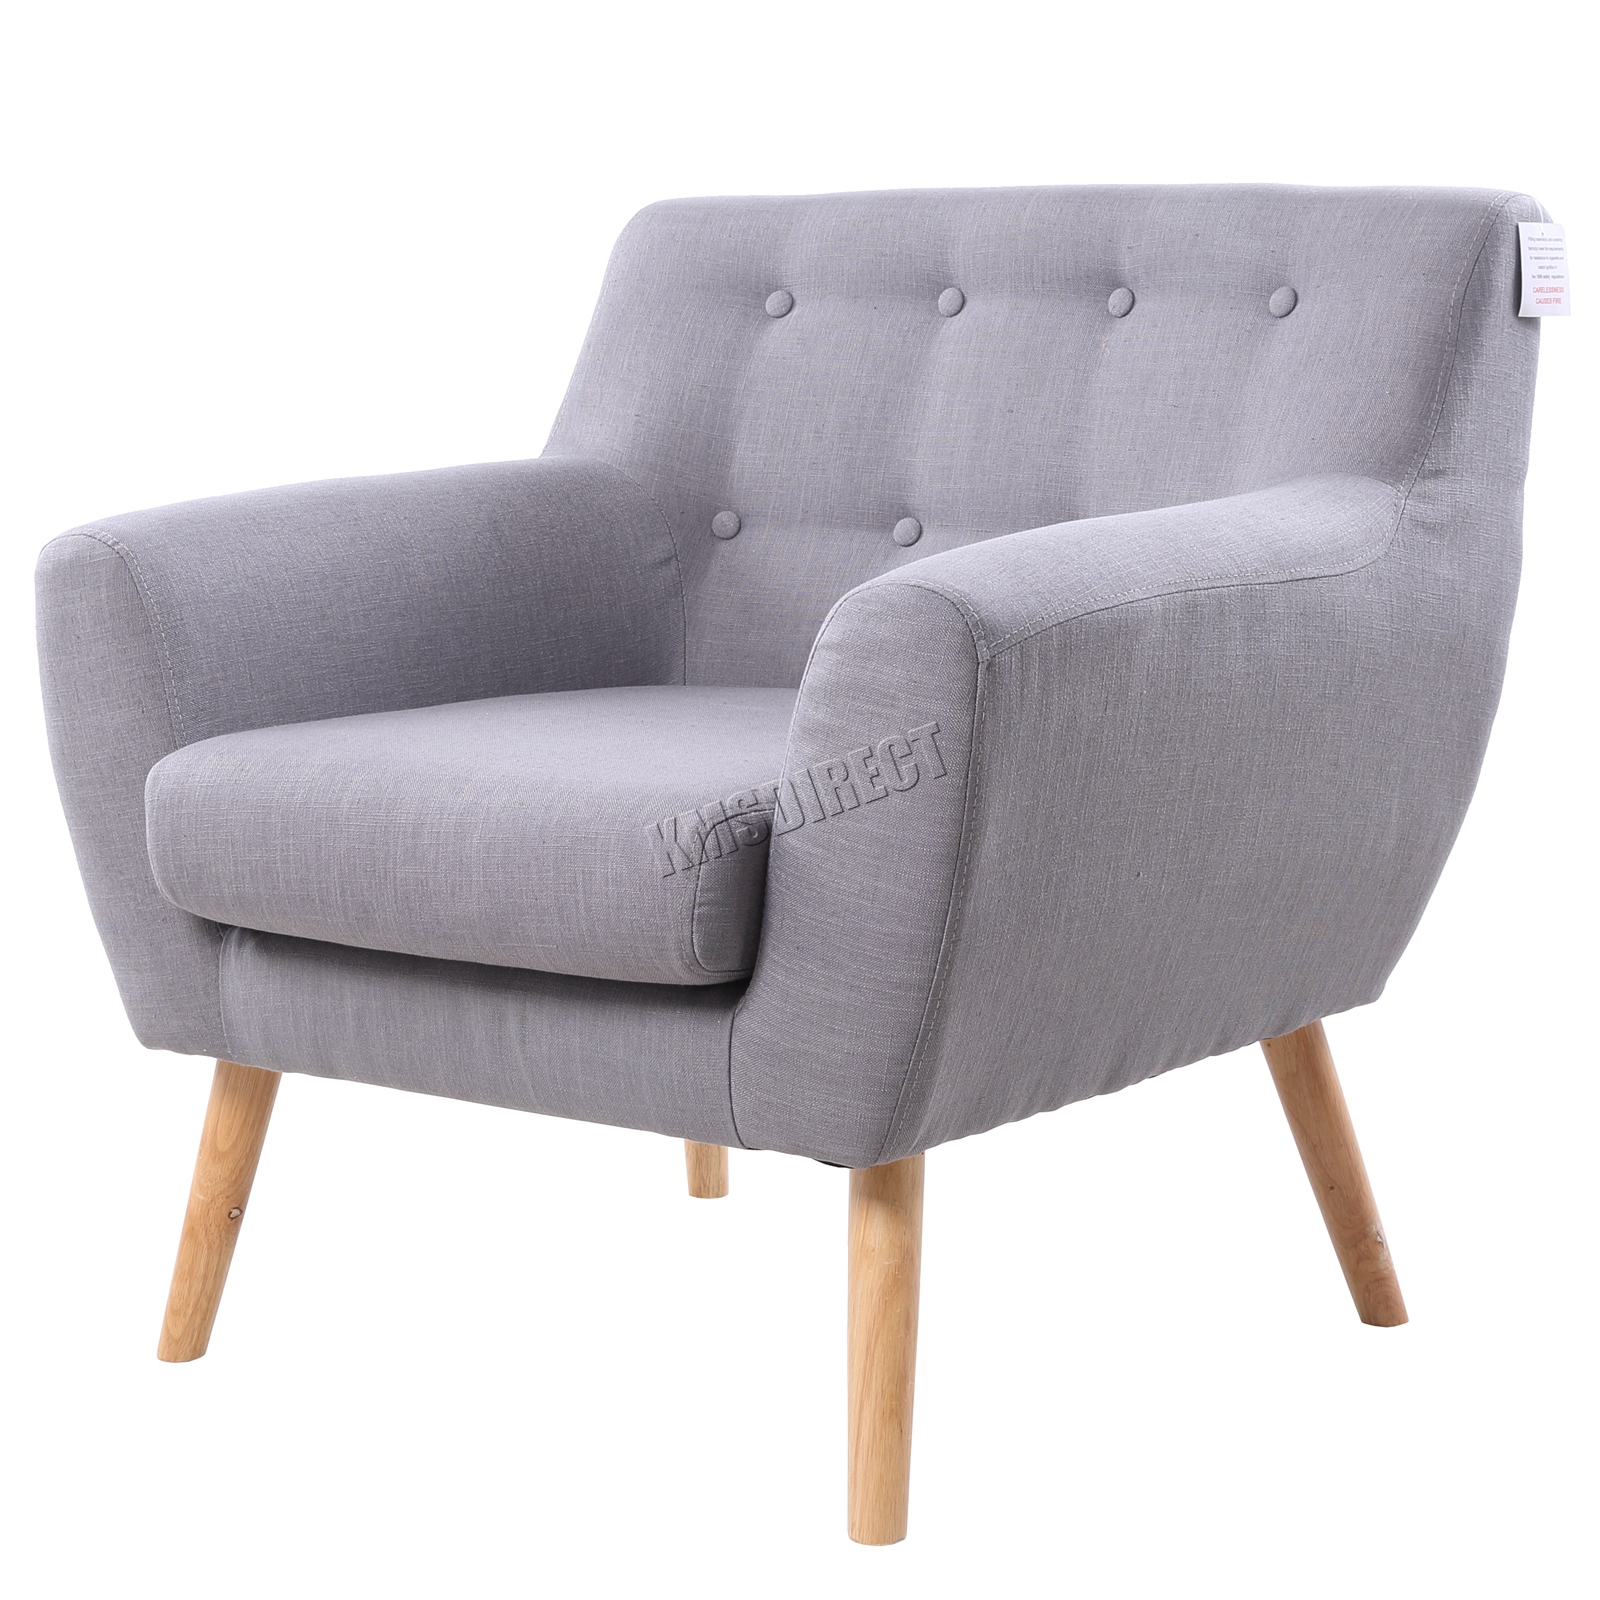 Foxhunter linen fabric 1 single seat sofa tub arm chair for Sofa chair